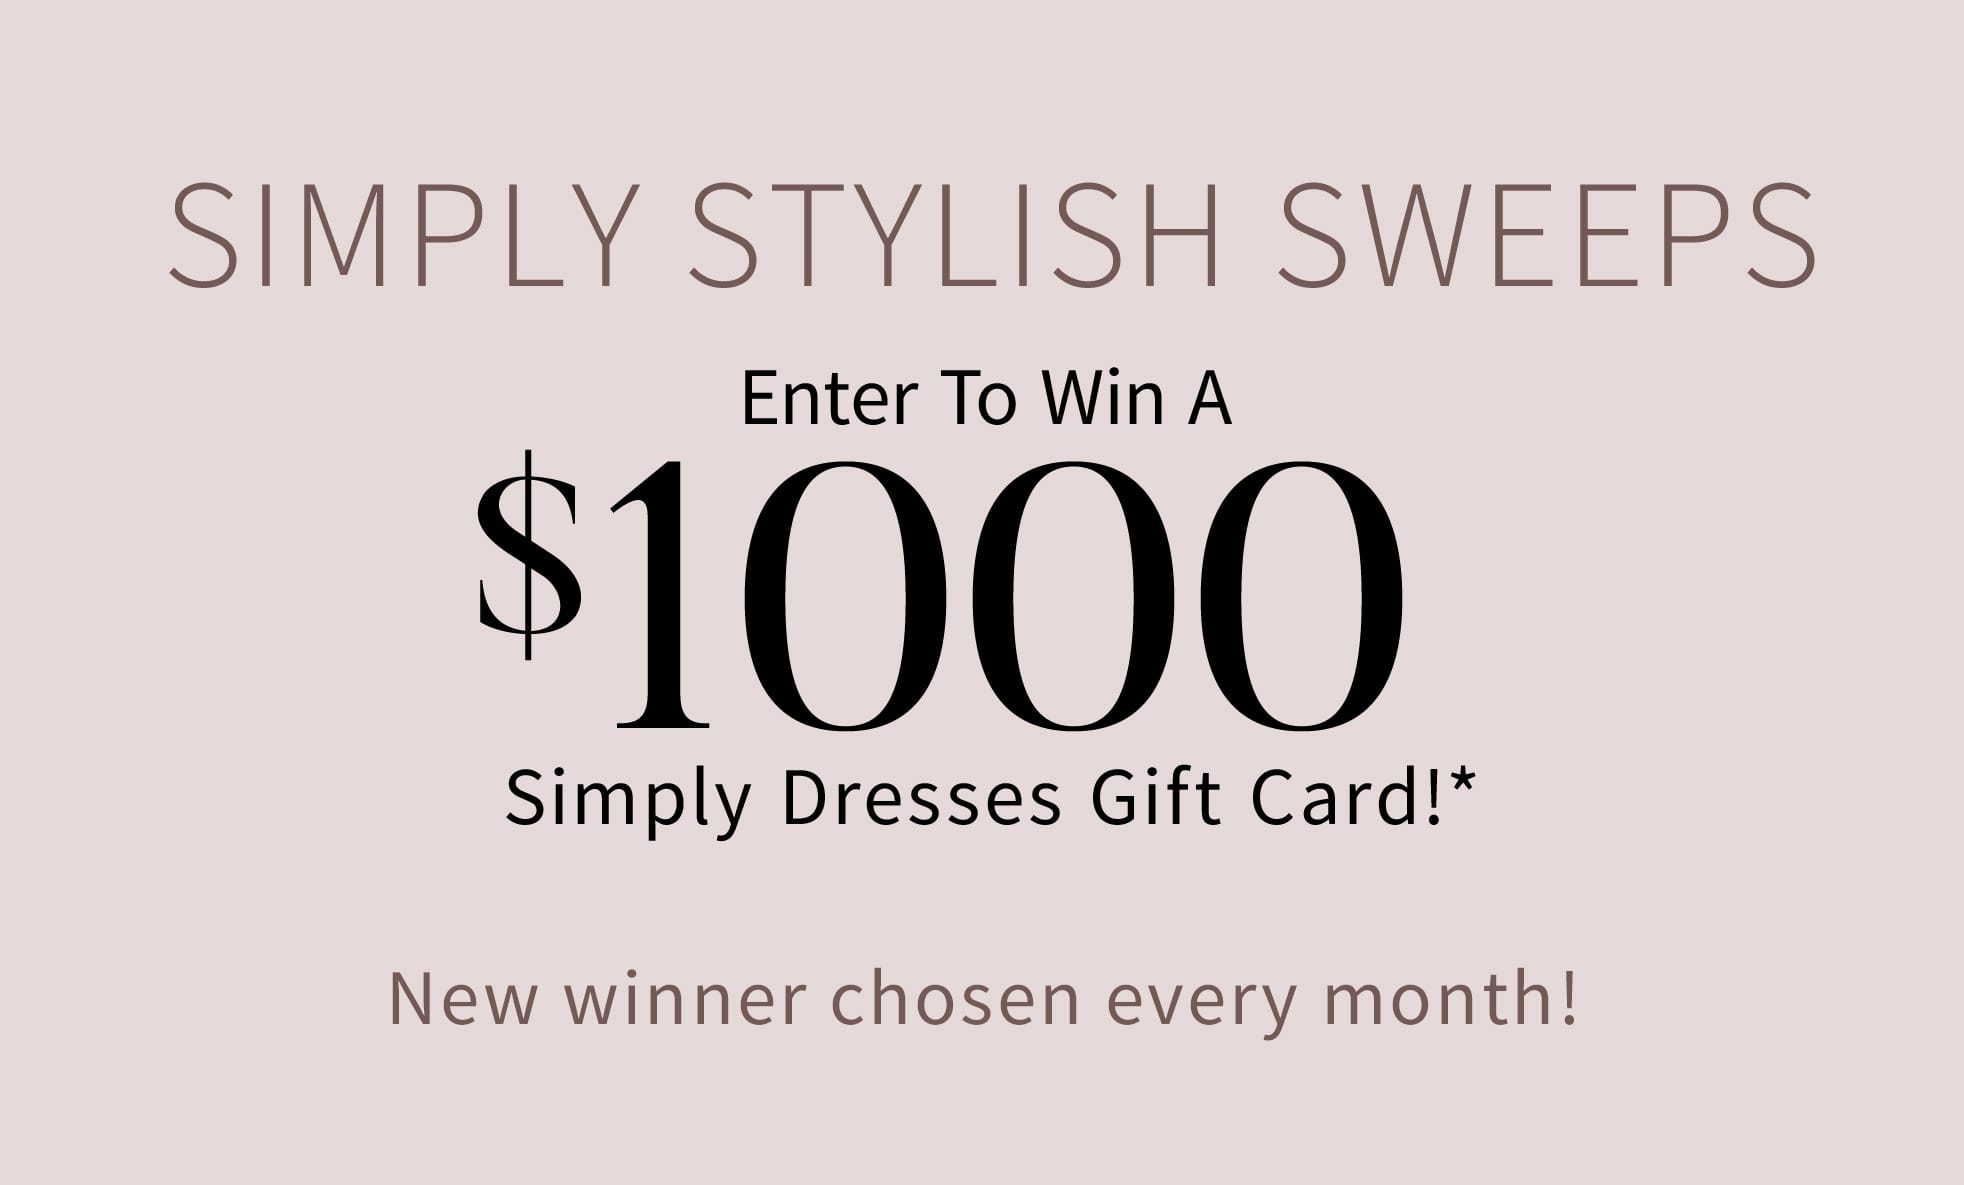 Simply Stylish Sweeps